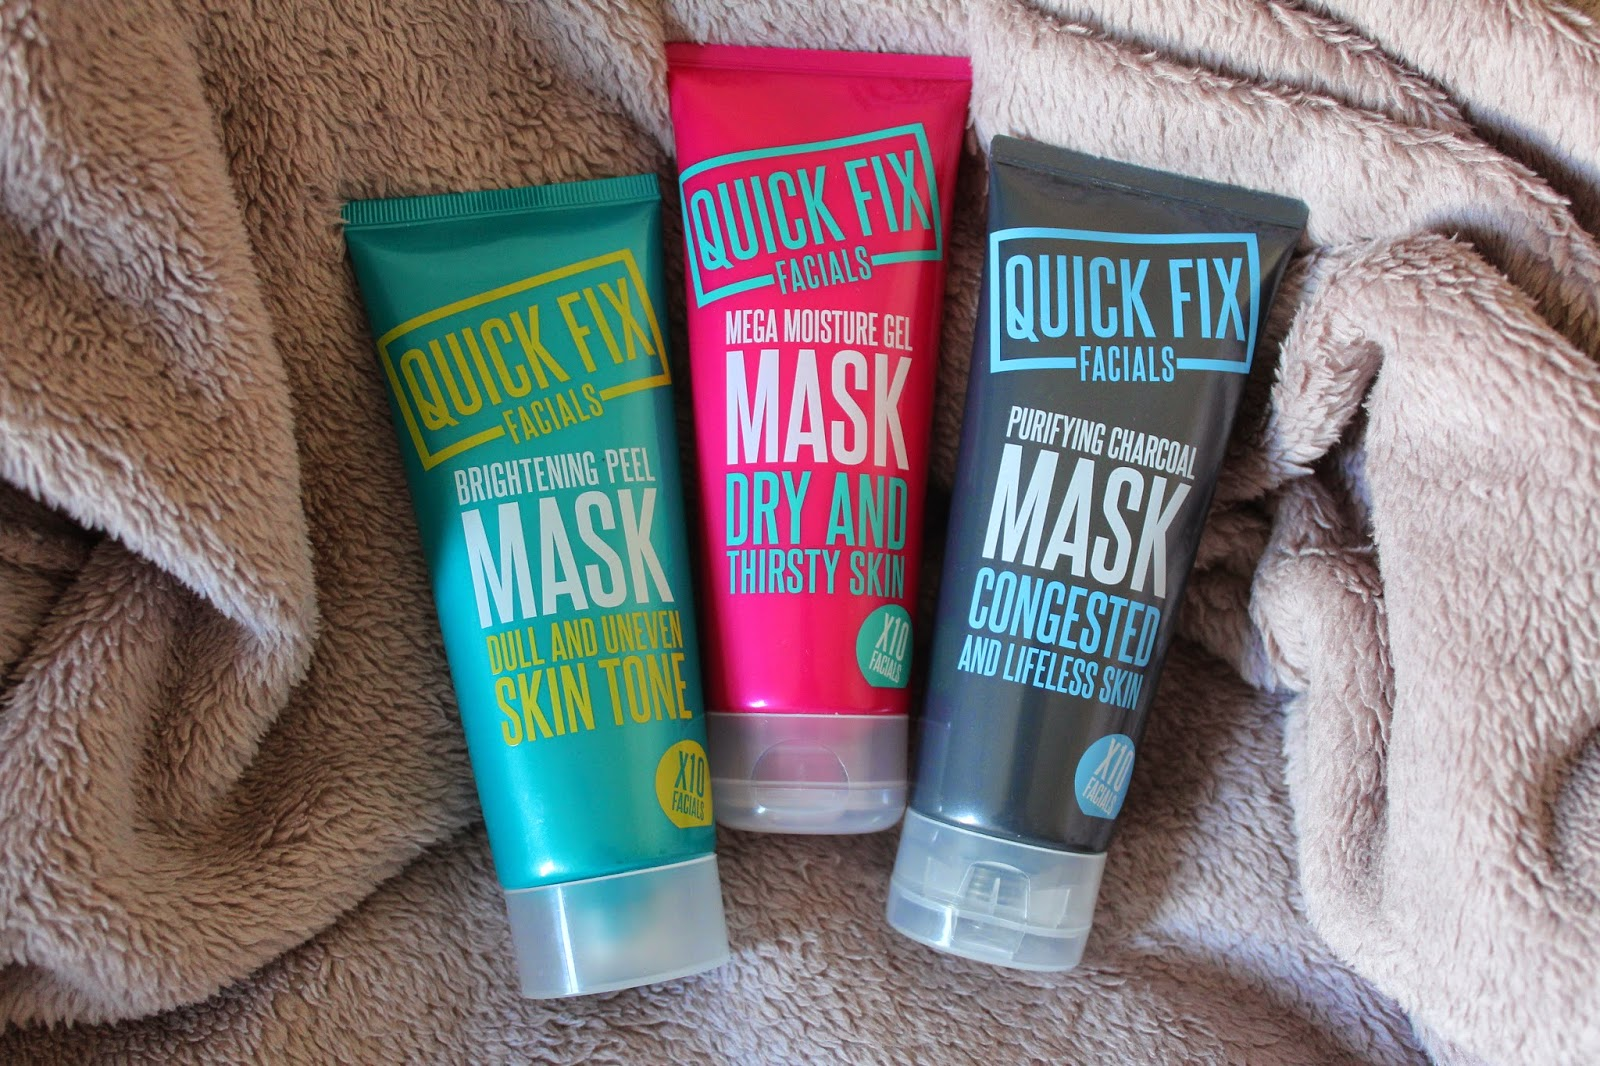 review quick fix facials skincare skin face mask masque